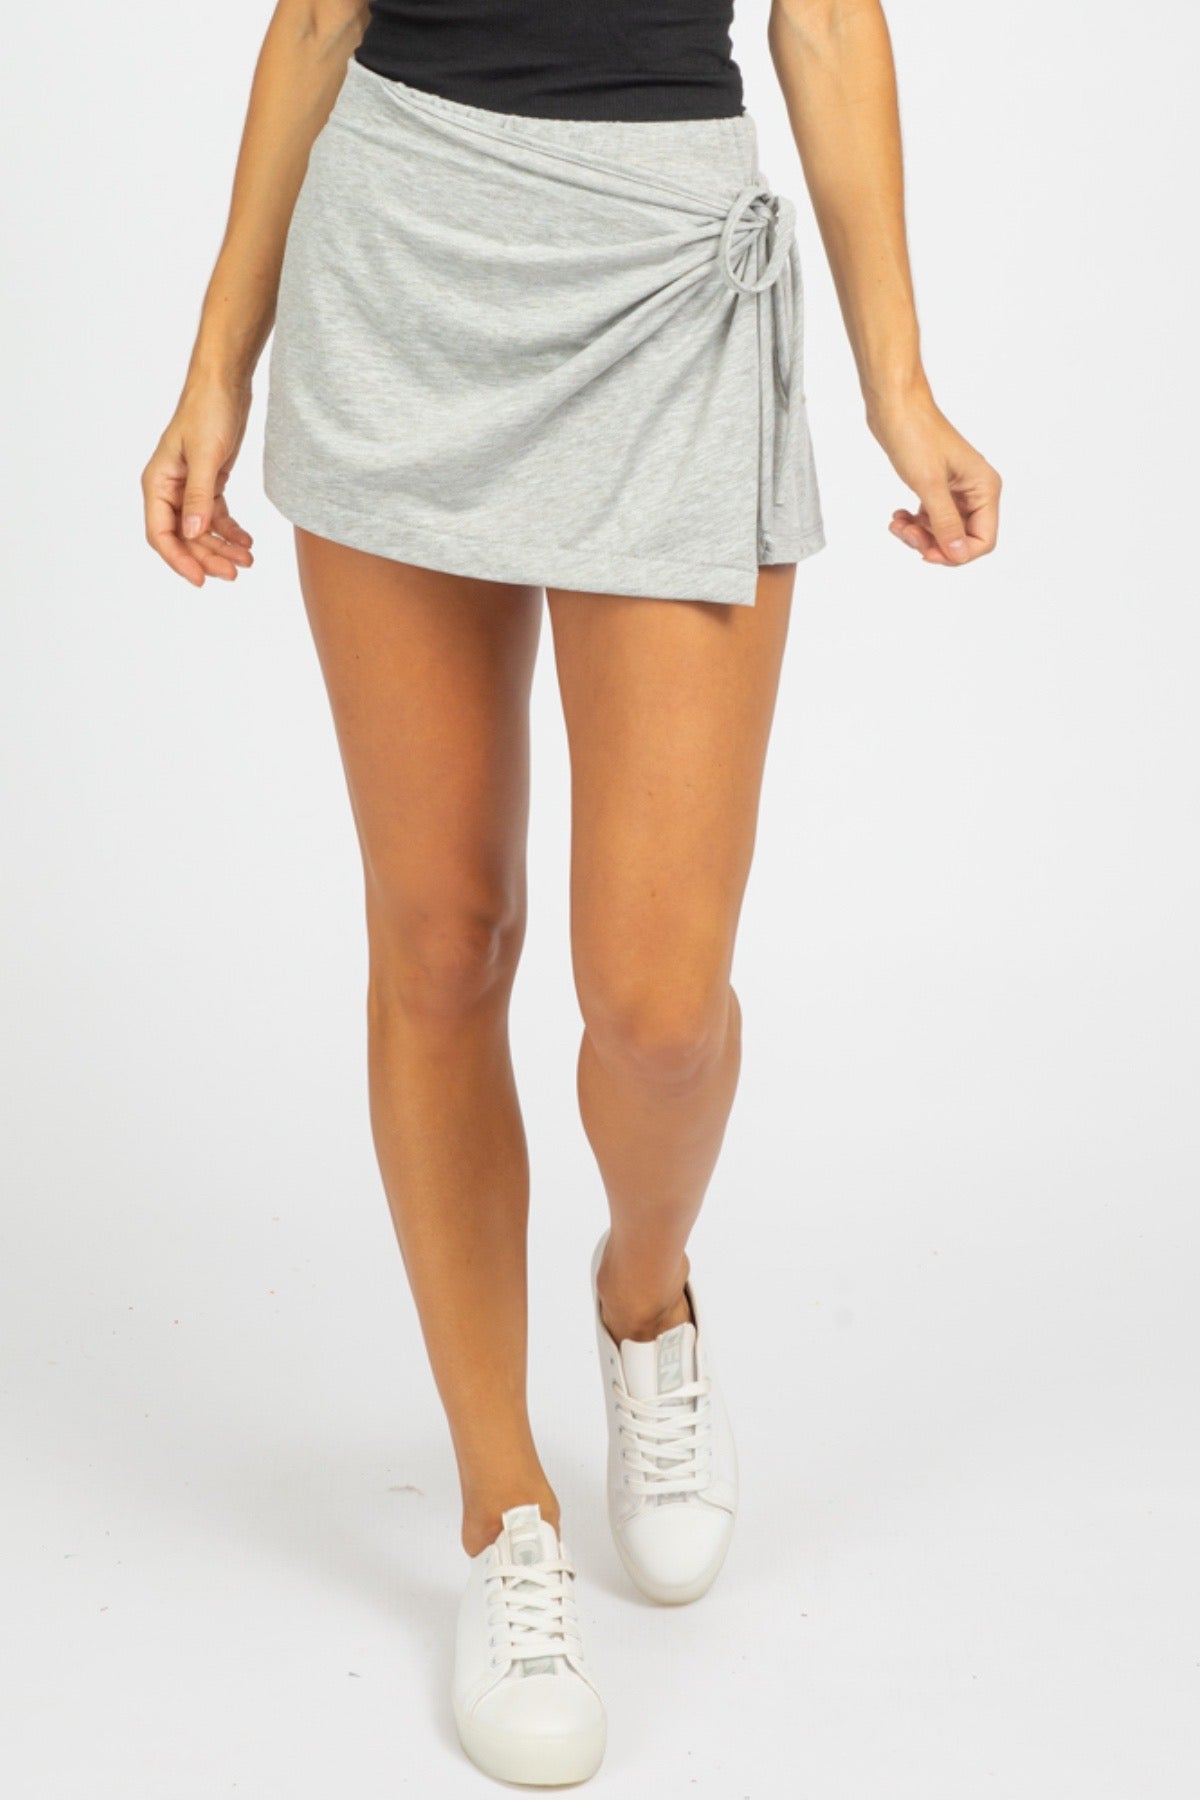 HEATHER GREY KNIT SKORT